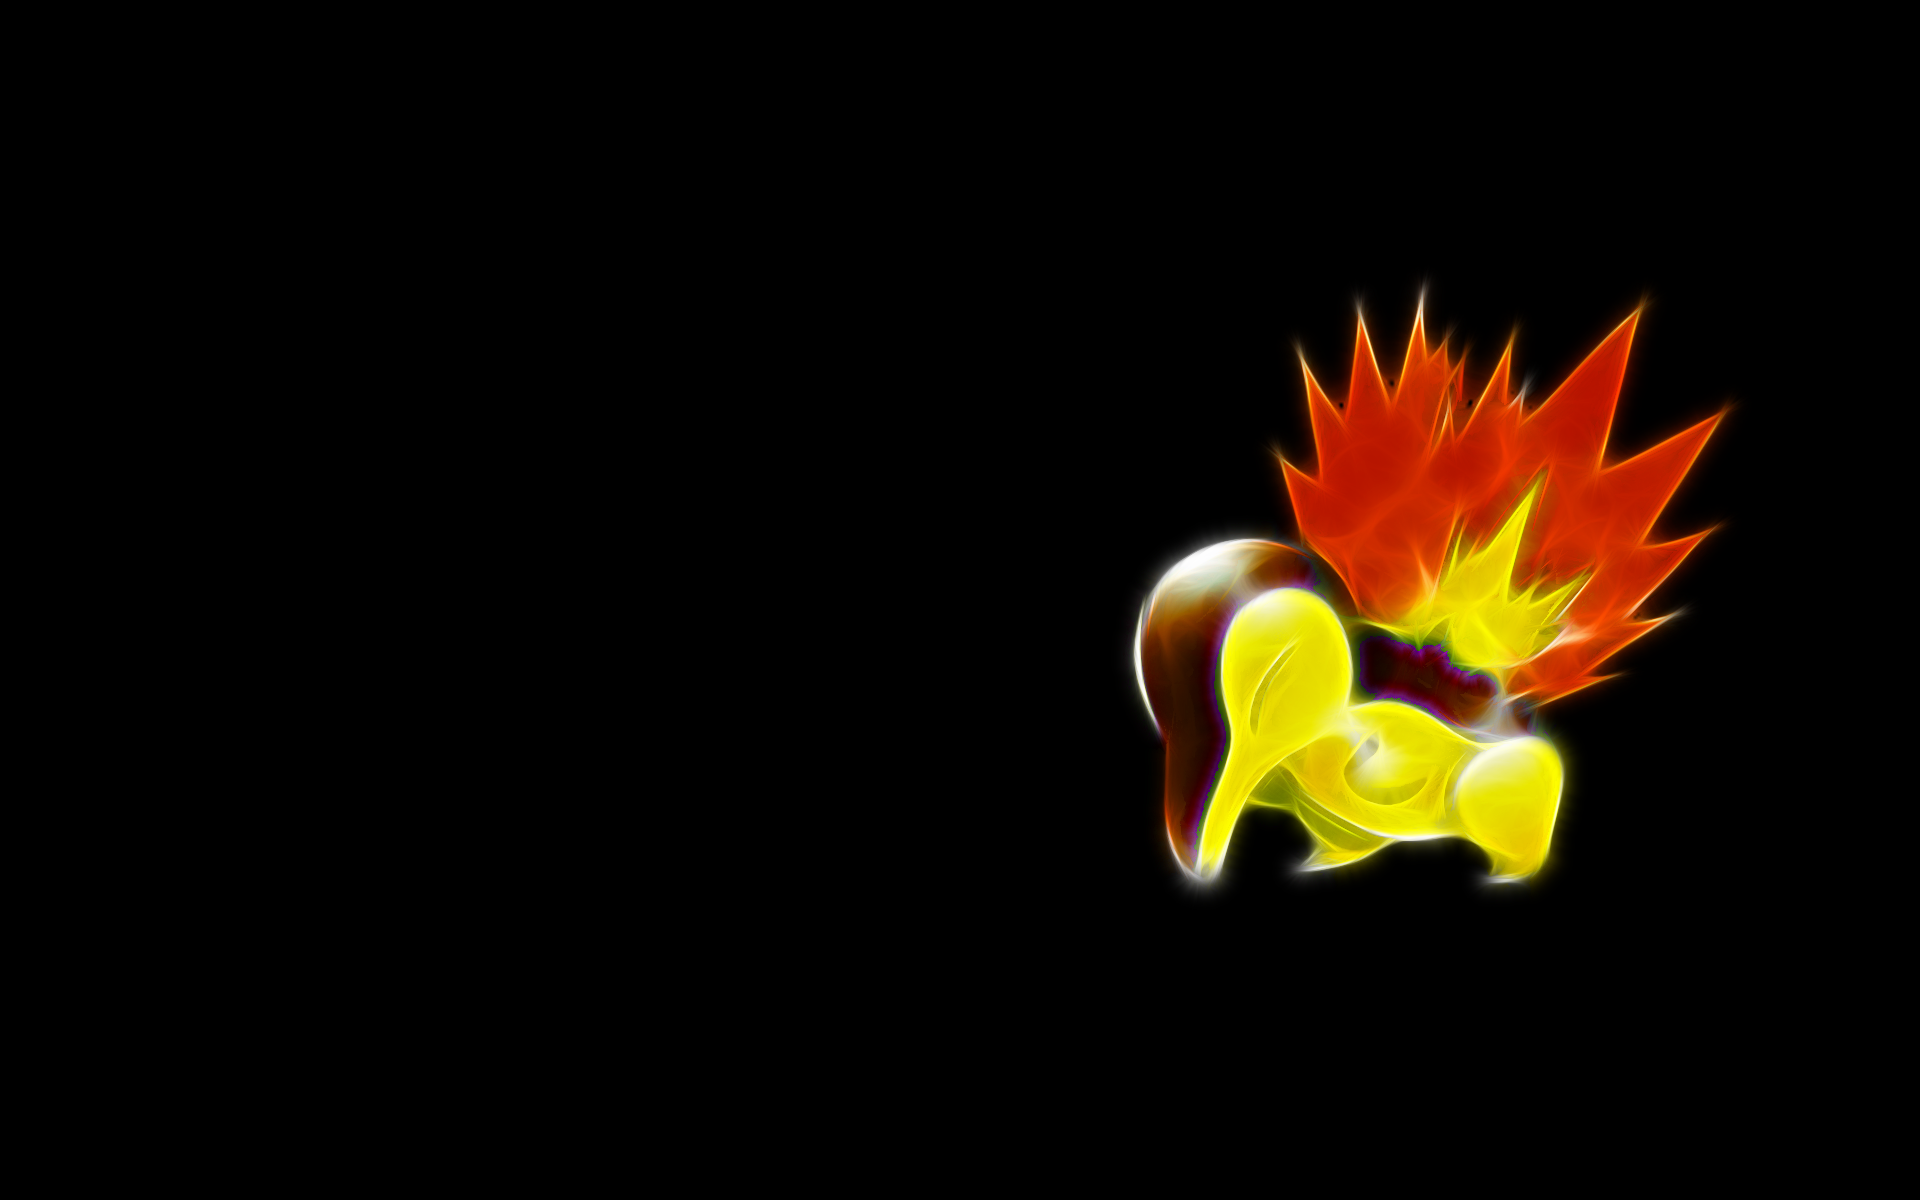 ... simple background cyndaquil black background wallpaper background Cyndaquil Wallpaper